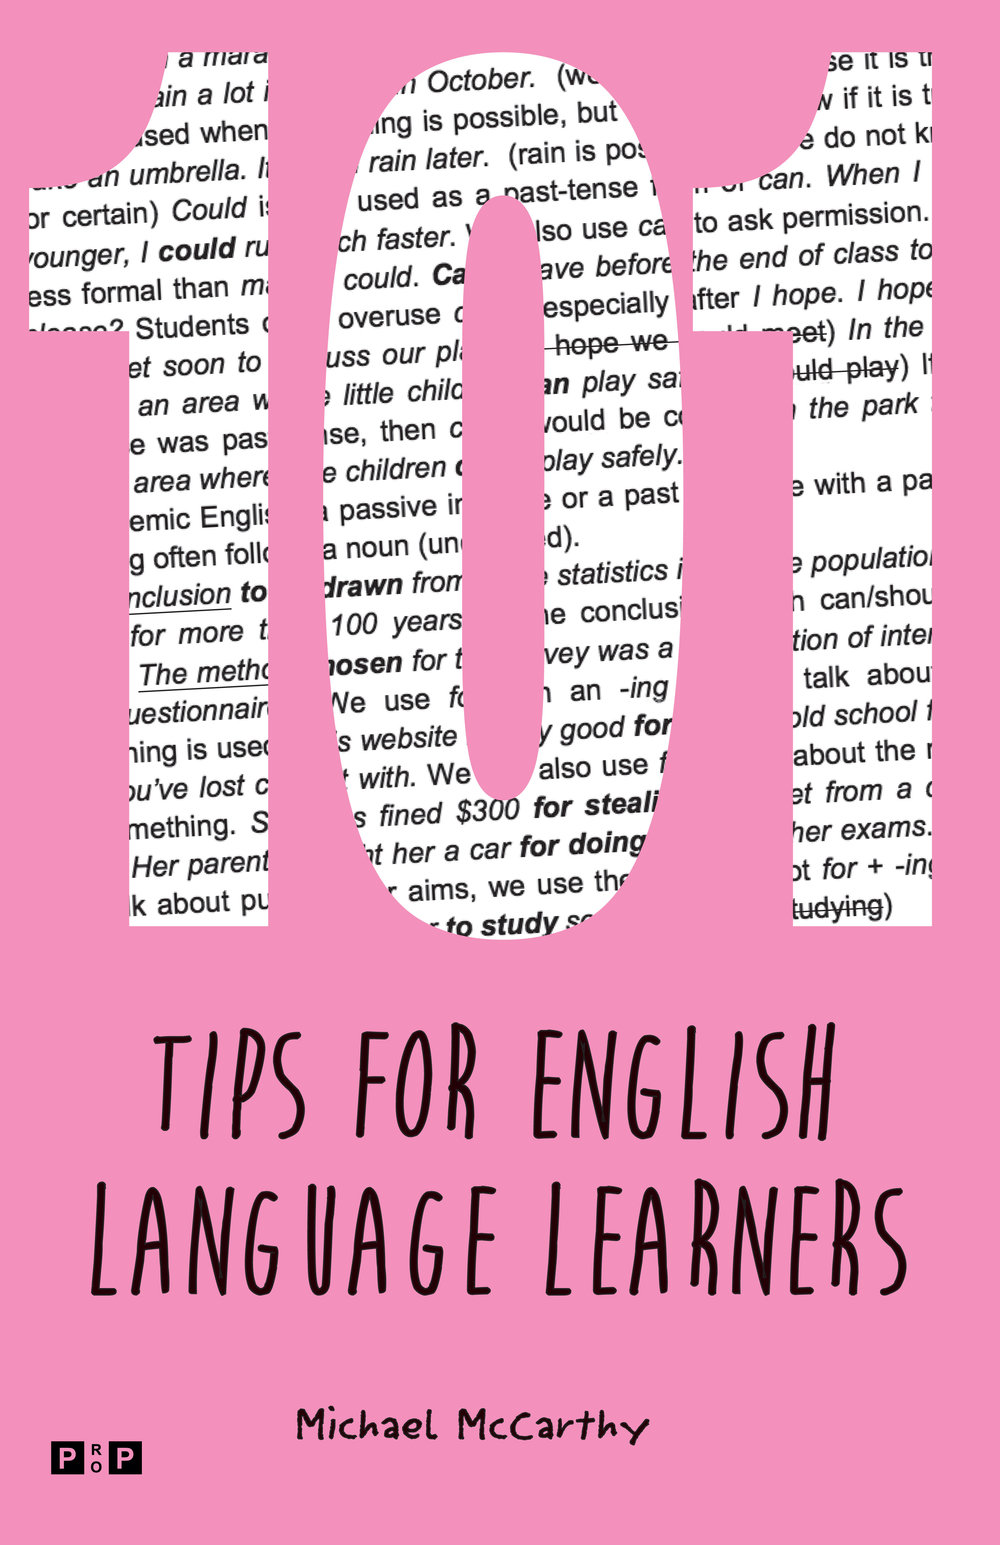 Mike's new book - A guide to the most common errors made by learners of English, based on Mike's notes and observations from his 50-year career